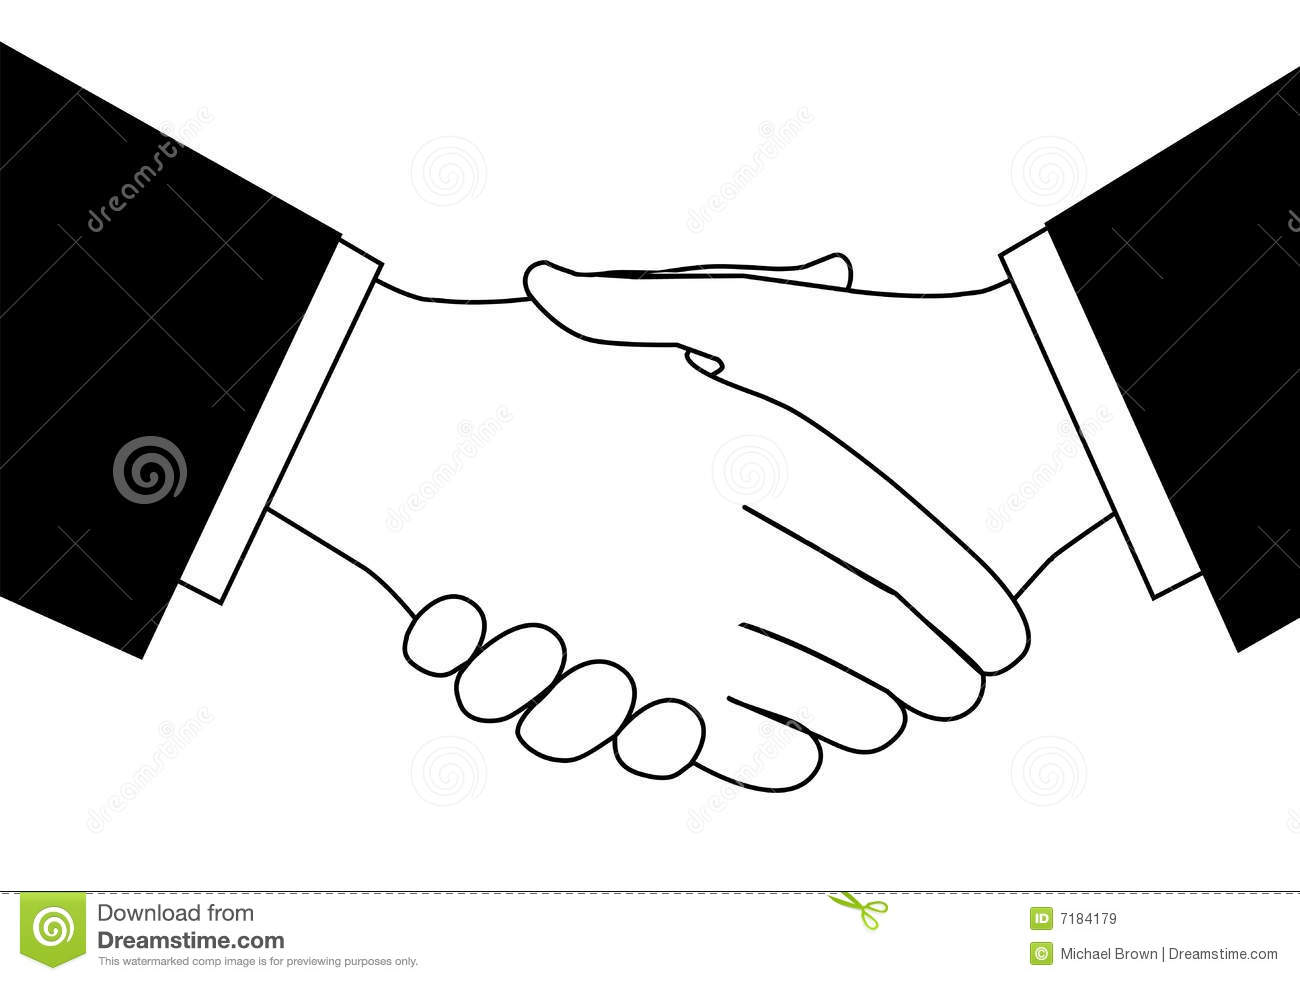 Business people handshake greeting deal at work photo free download - Agree Business Clipart Deal Hands Handshake Meet People